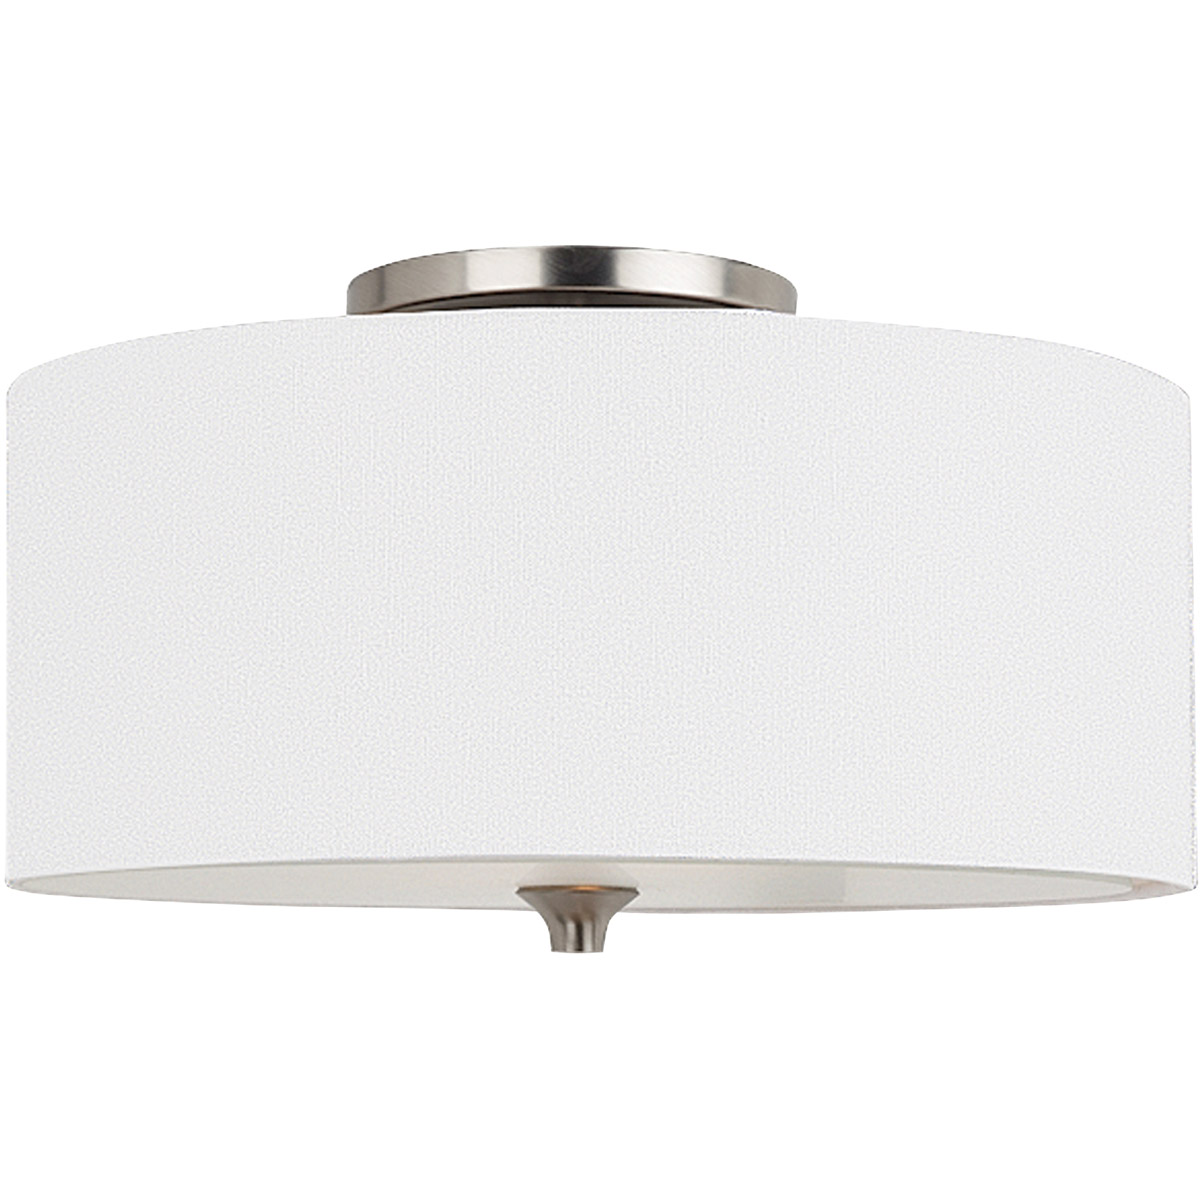 Sea gull 75952 962 stirling 2 light 14 inch brushed nickel flush sea gull 75952 962 stirling 2 light 14 inch brushed nickel flush mount ceiling light mozeypictures Choice Image